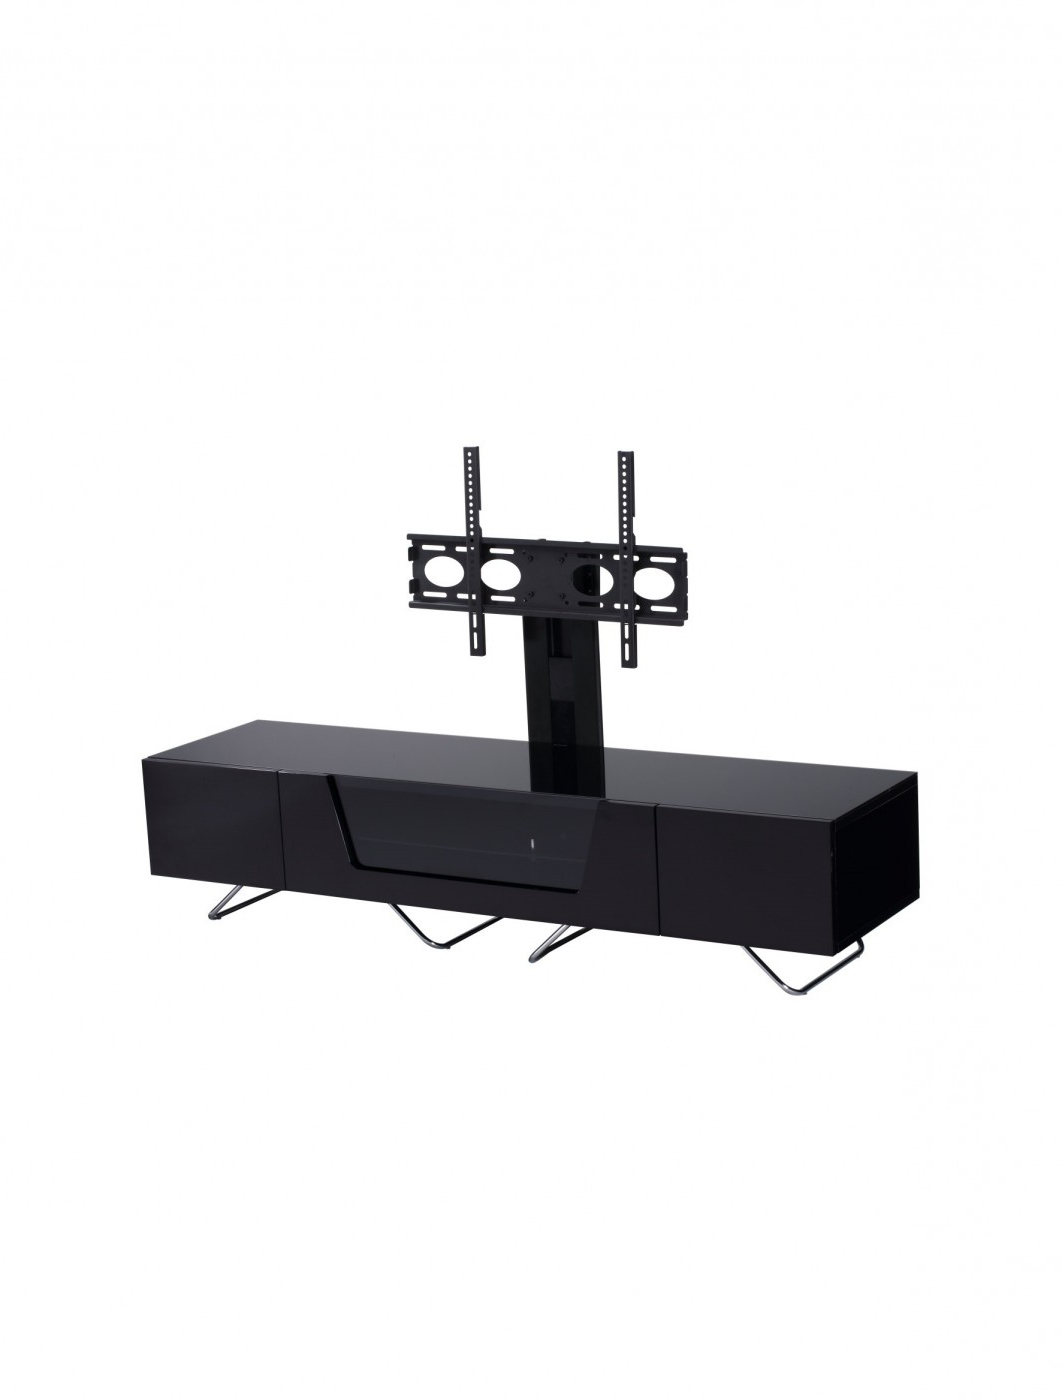 Alphason Chromium Cantilever Tv Stand Cro2 1600Bkt Bk (Gallery 17 of 20)